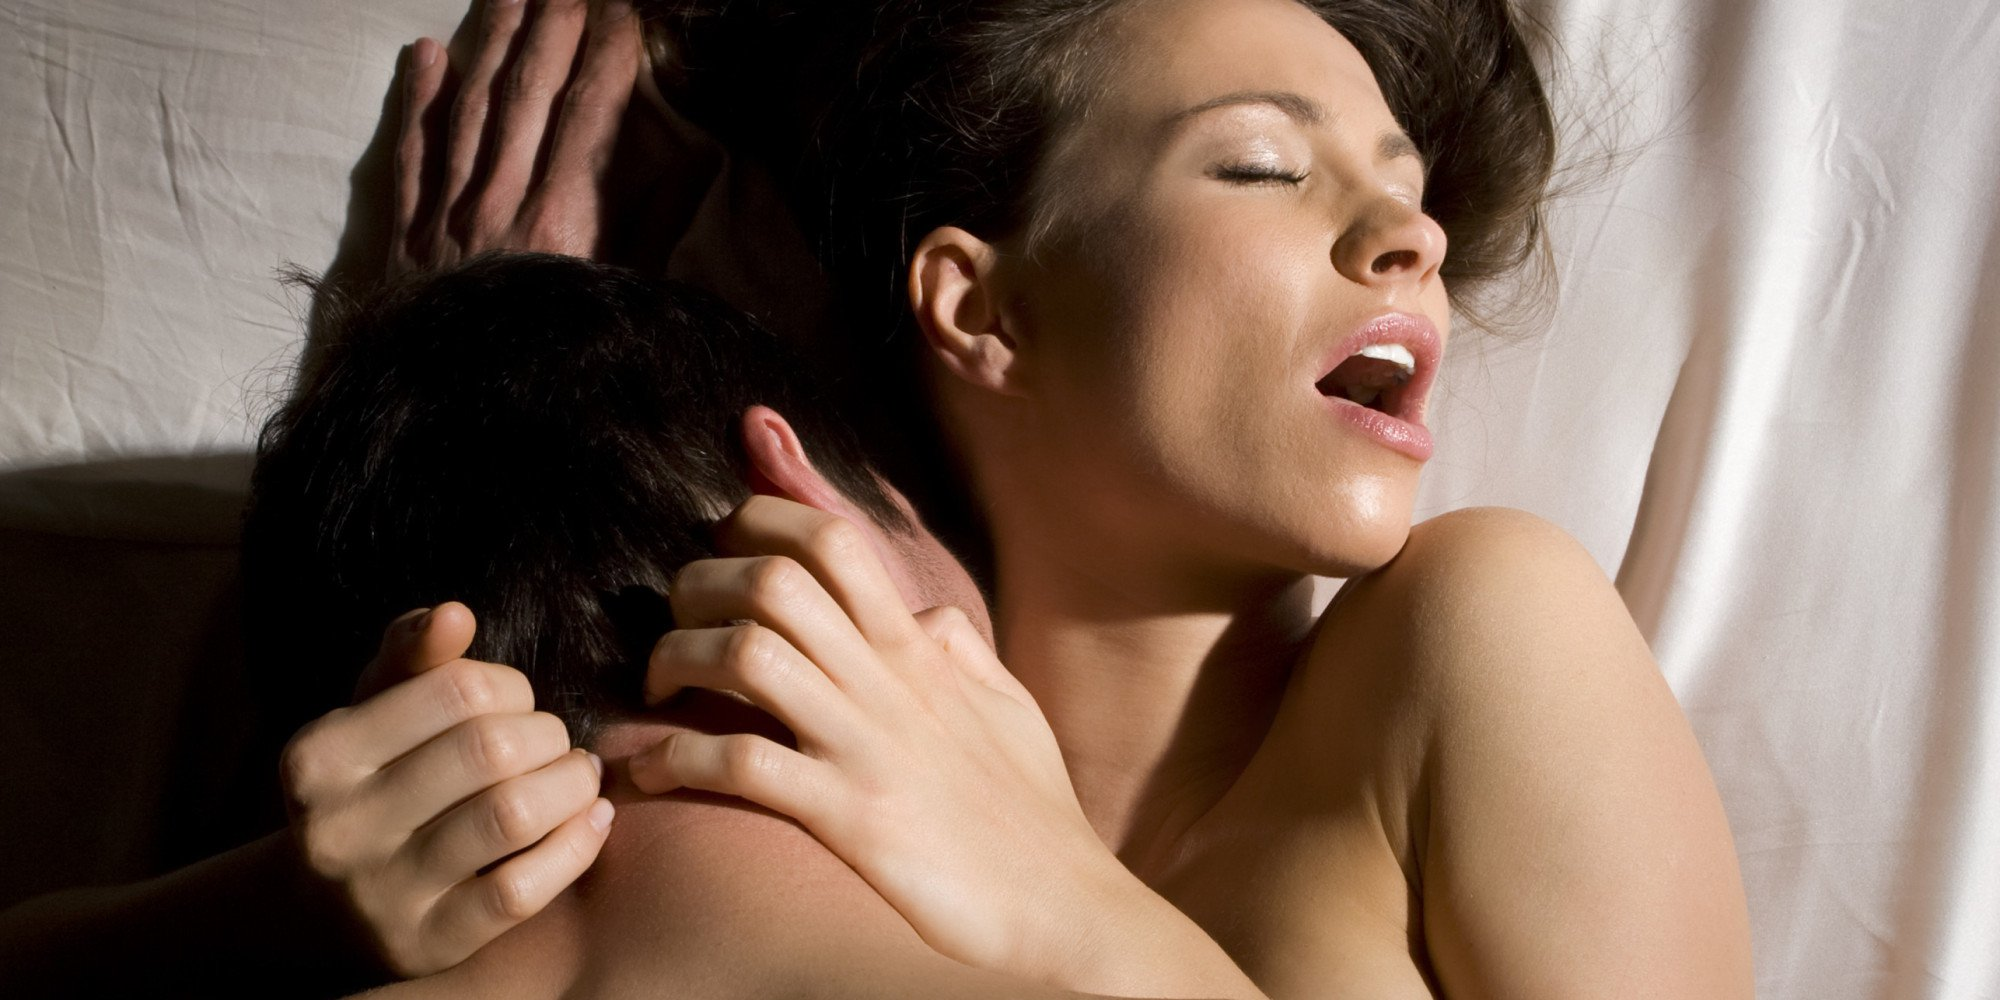 Video: Big reasons why your woman fakes those orgasms